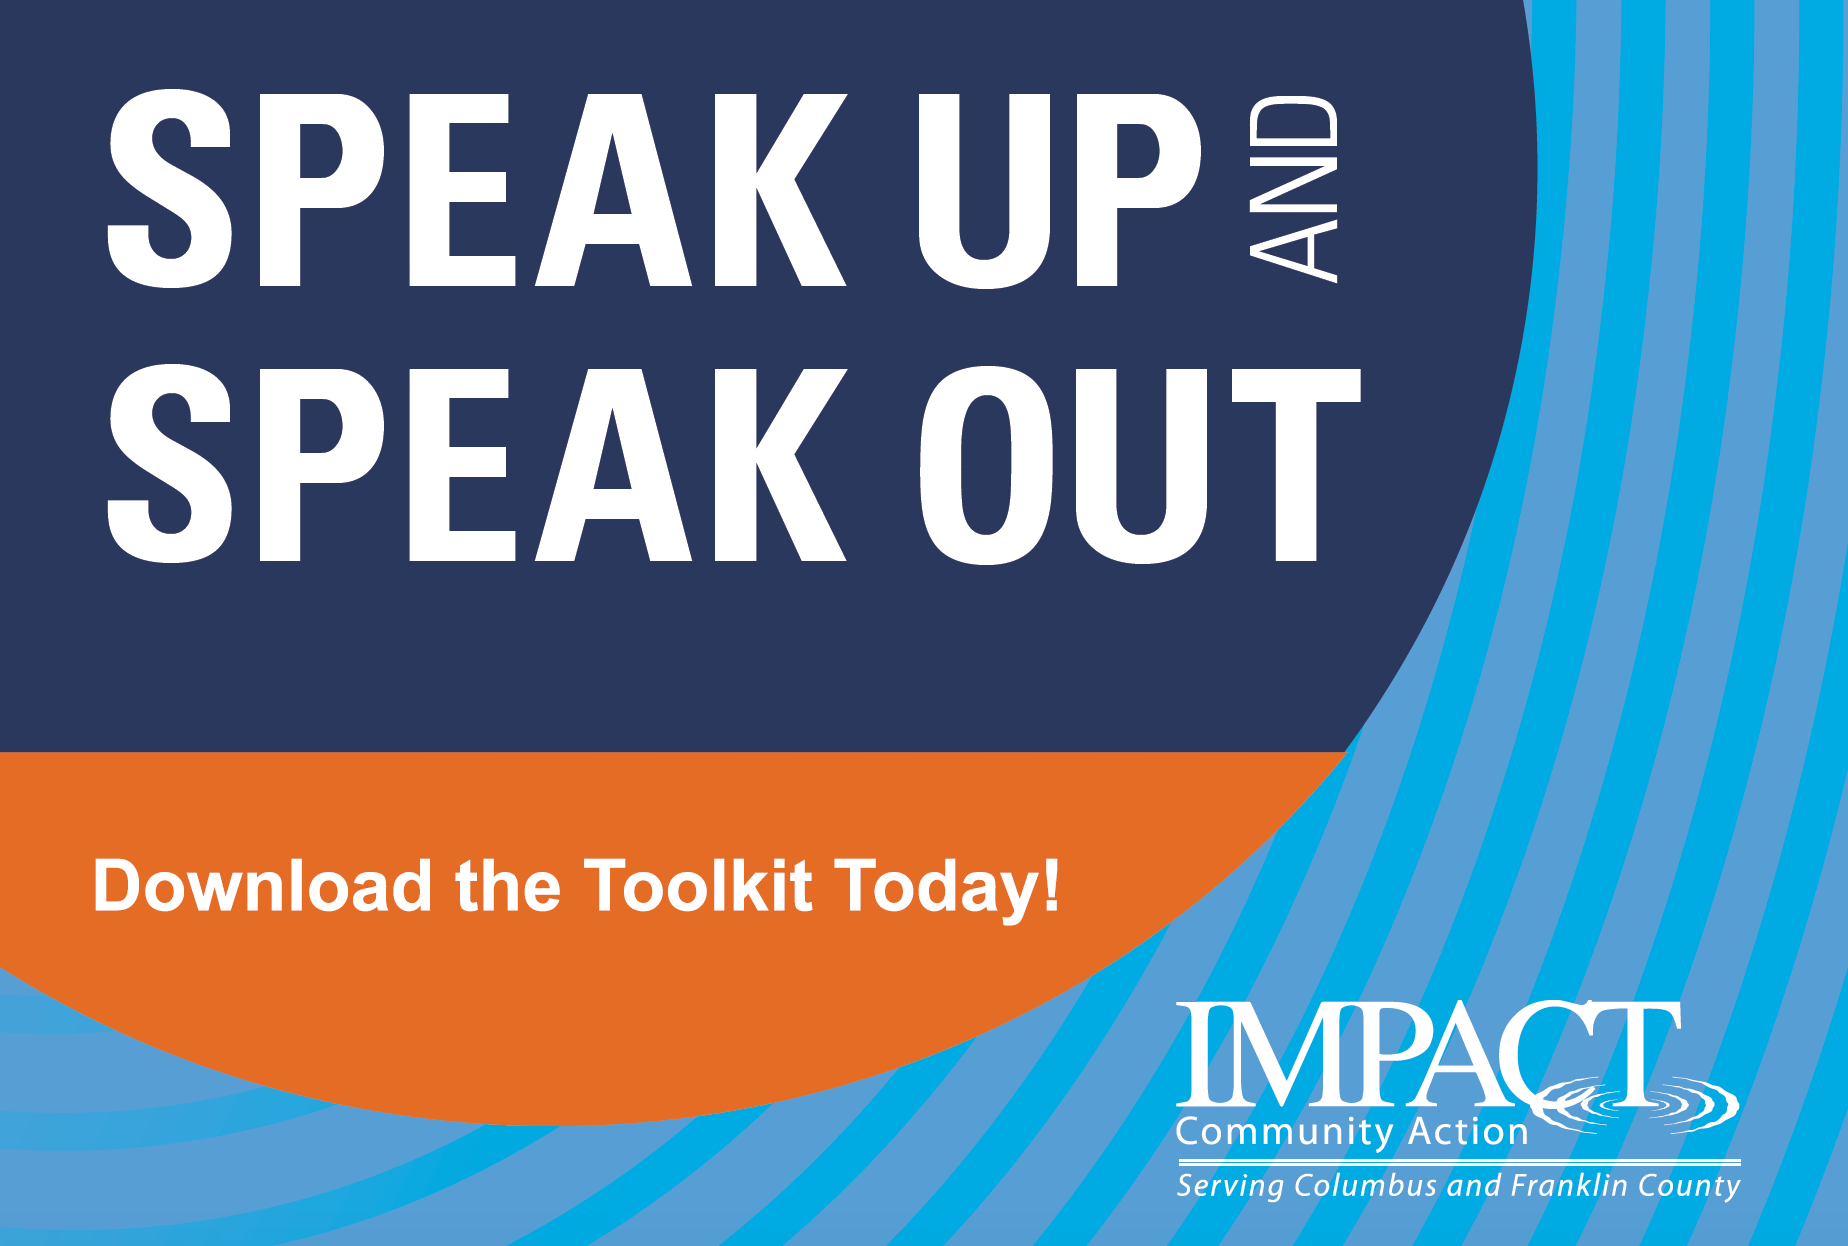 Click to Download the Toolkit